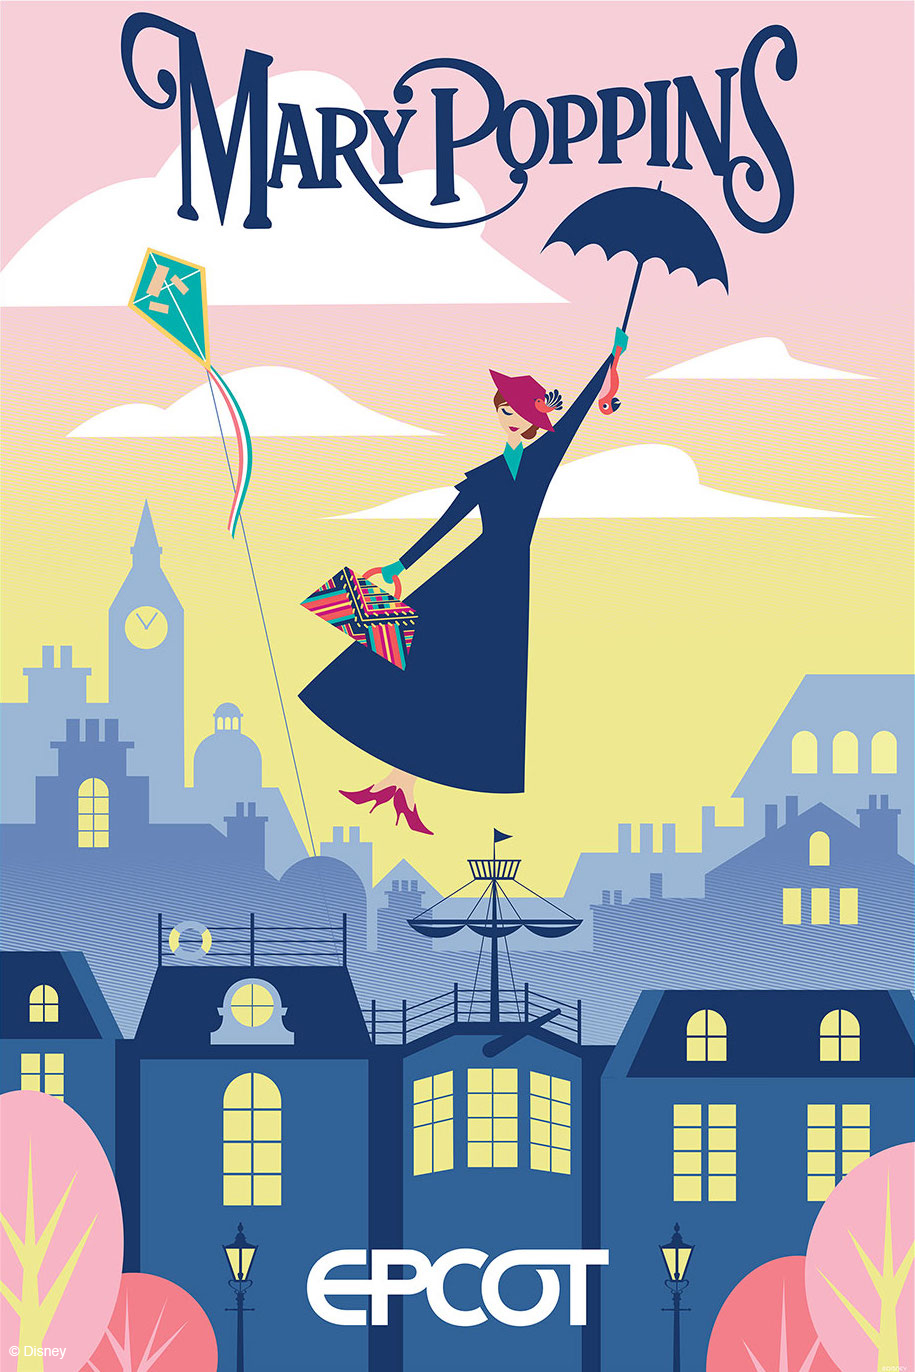 Epcot - Mary Poppins